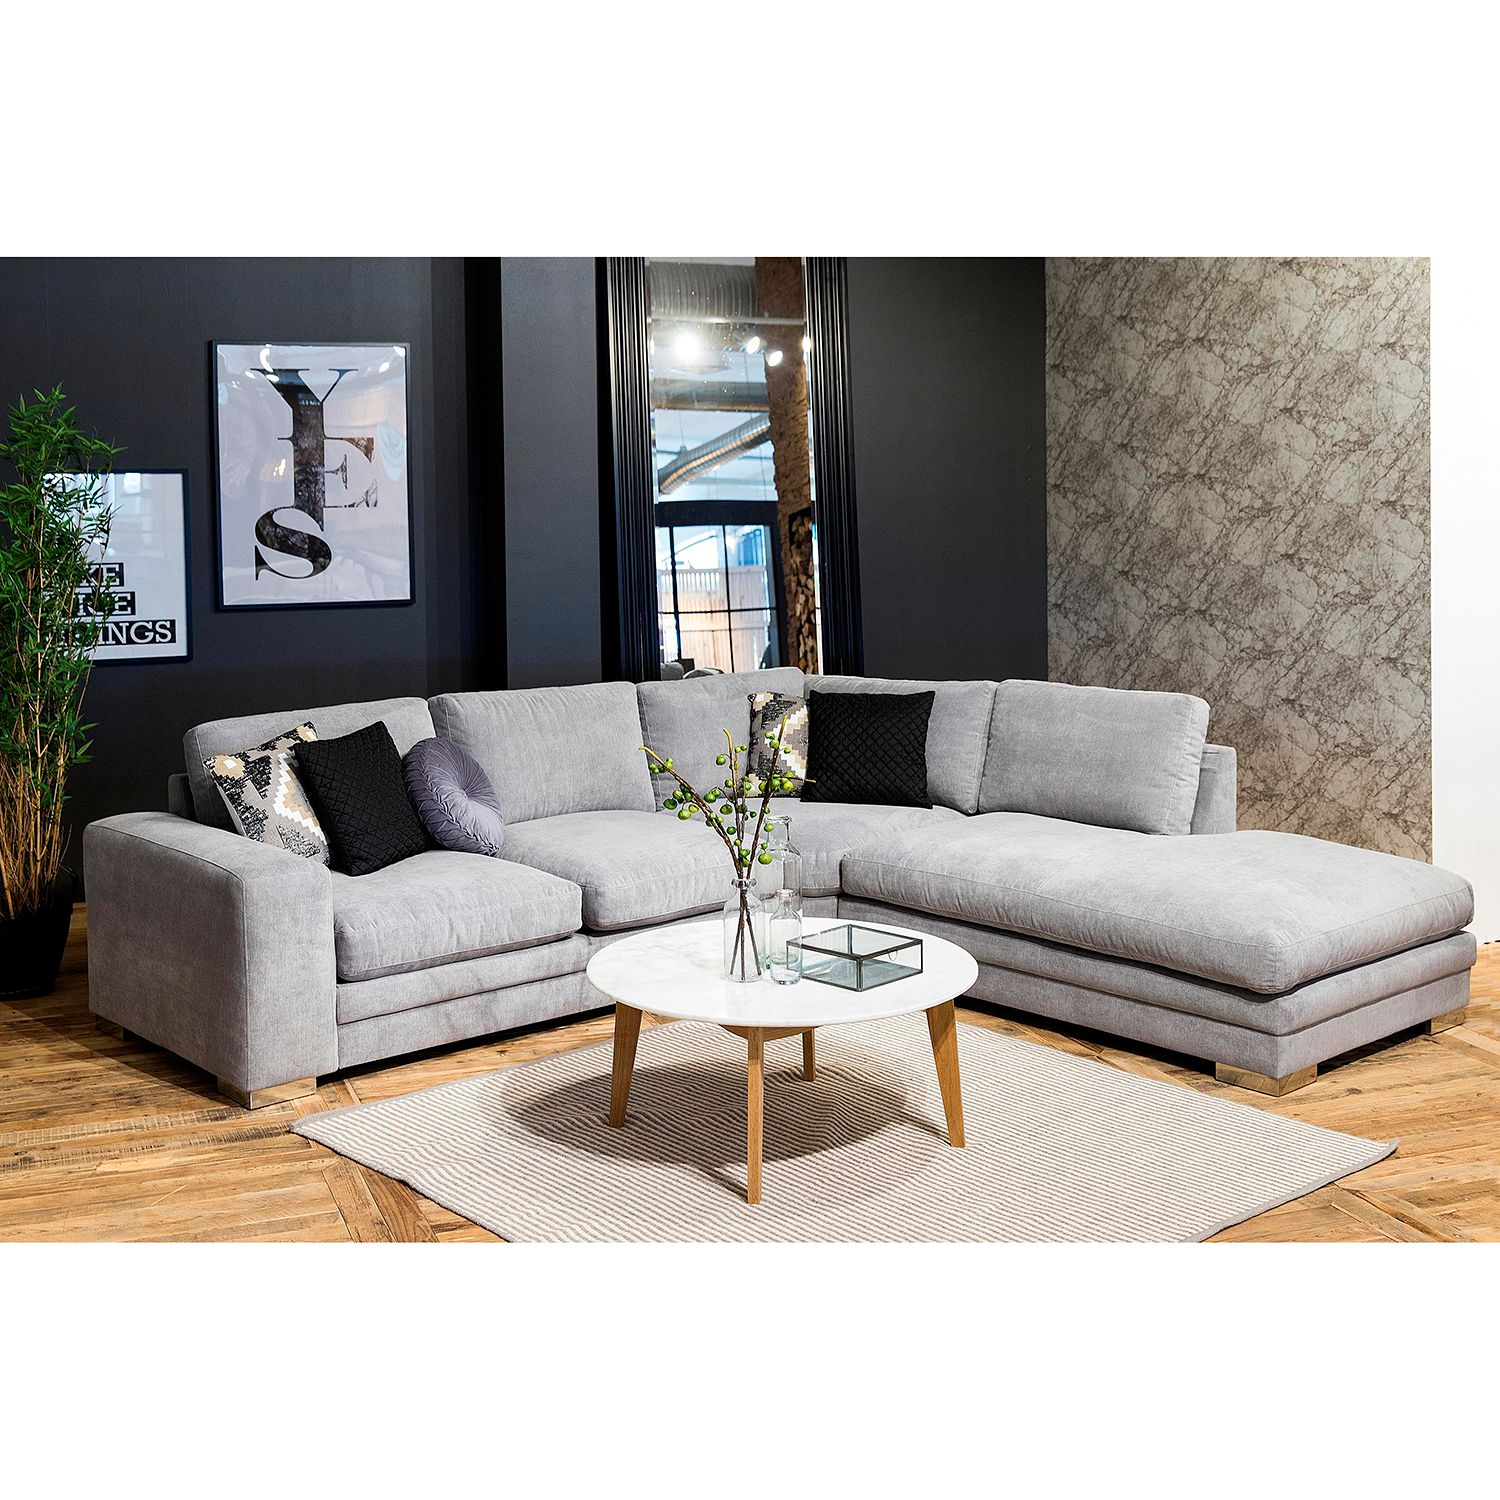 M-AC-03-00166 Ecksofa Intento – Microfaser – Grau, roomscape ...